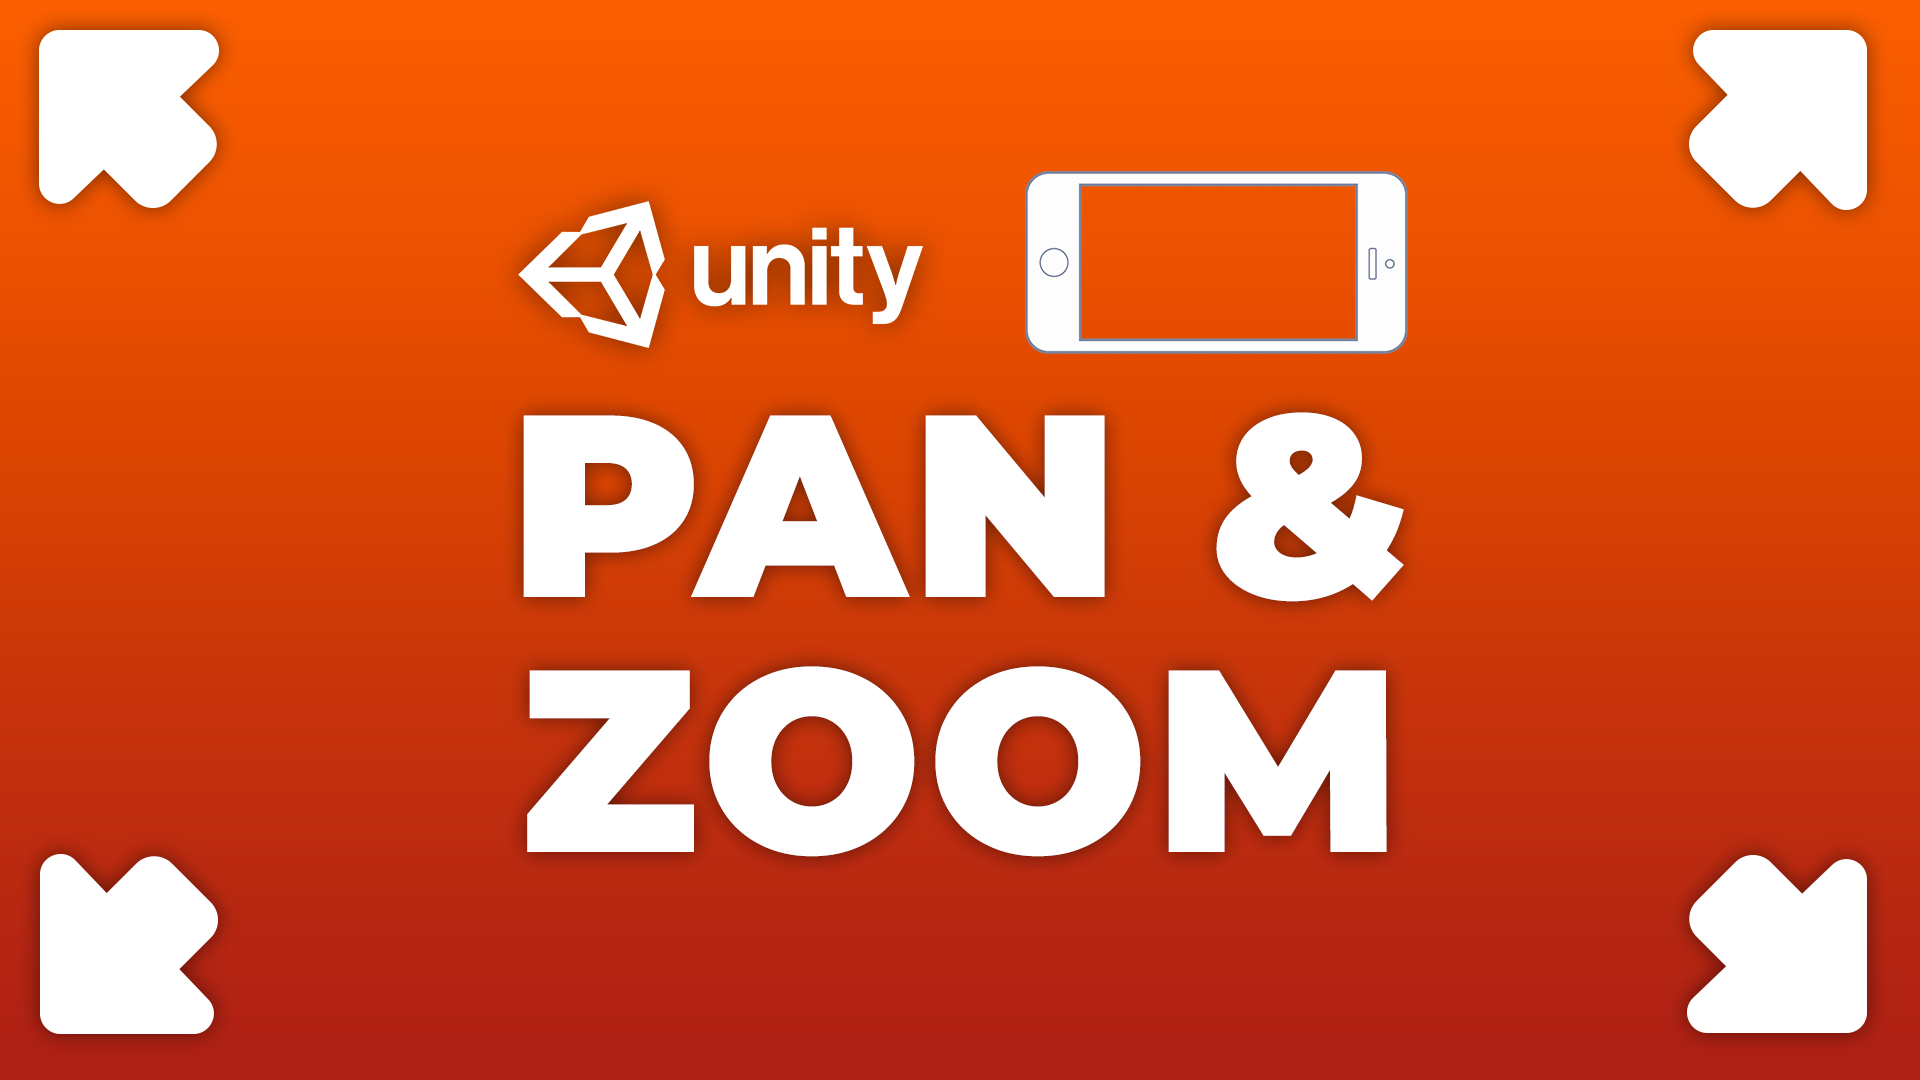 Pan & Zoom - How to Pan and Zoom on Touch Devices in Unity